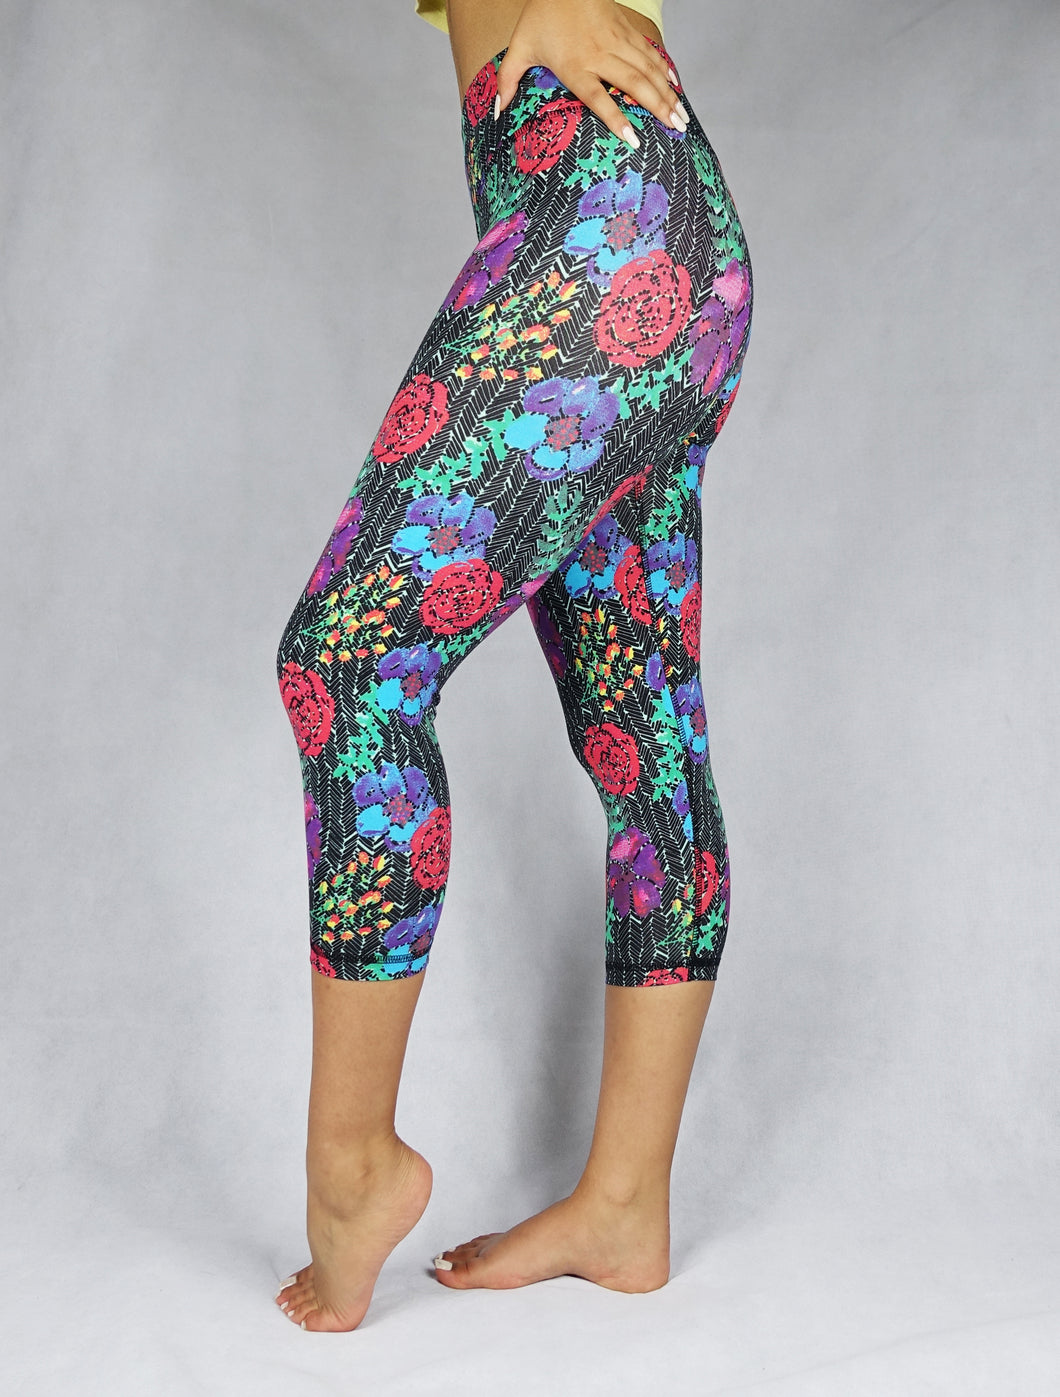 Experience the power of the flower to lift up your mood and senses! Our compression leggings are designed for the ultimate performance and perfect for yoga, the gym, pilates, or to lounge around.